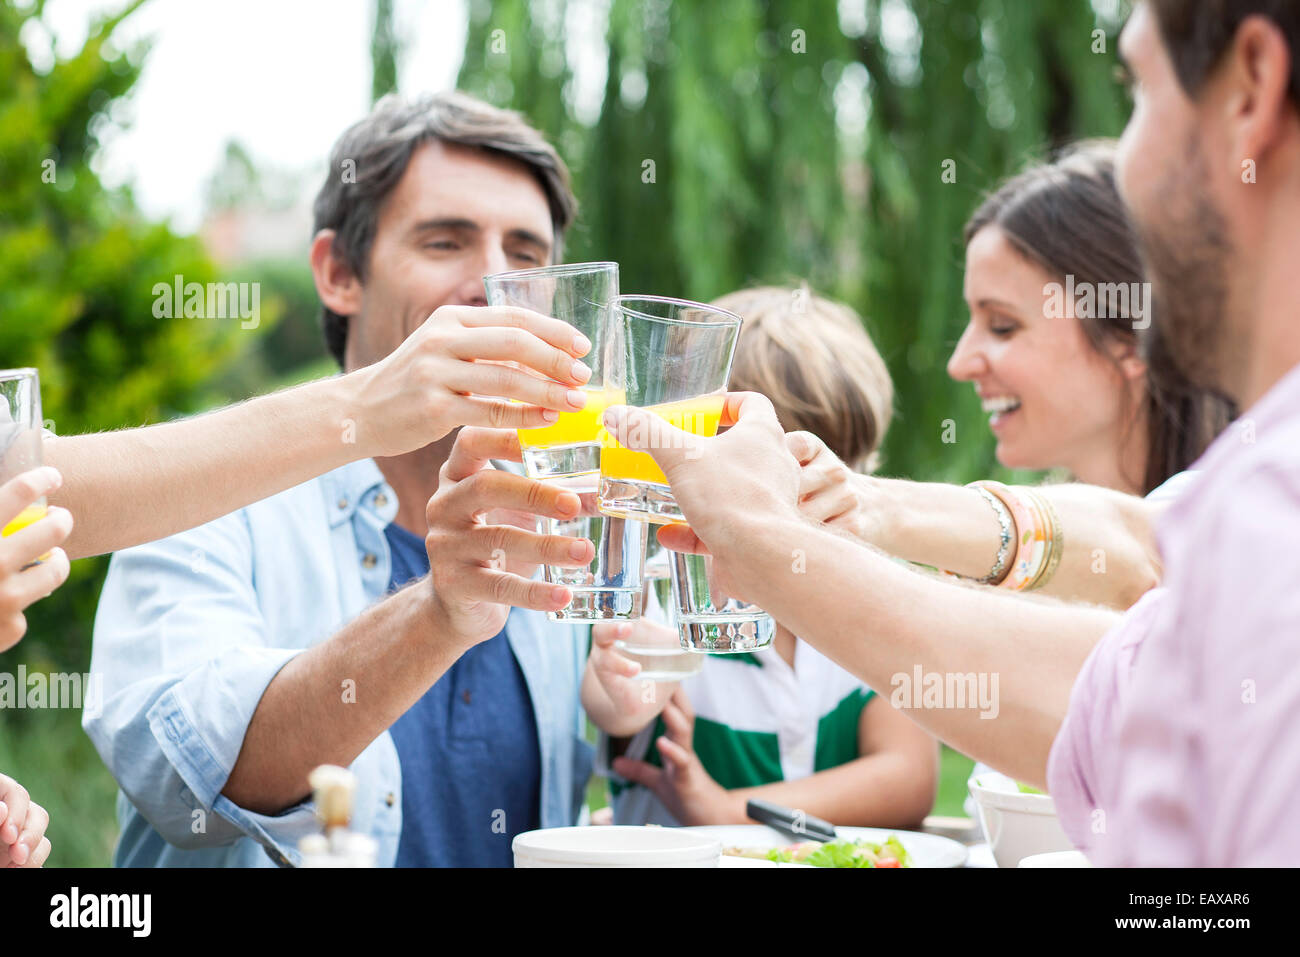 Family clinking glasses at outdoor gathering - Stock Image